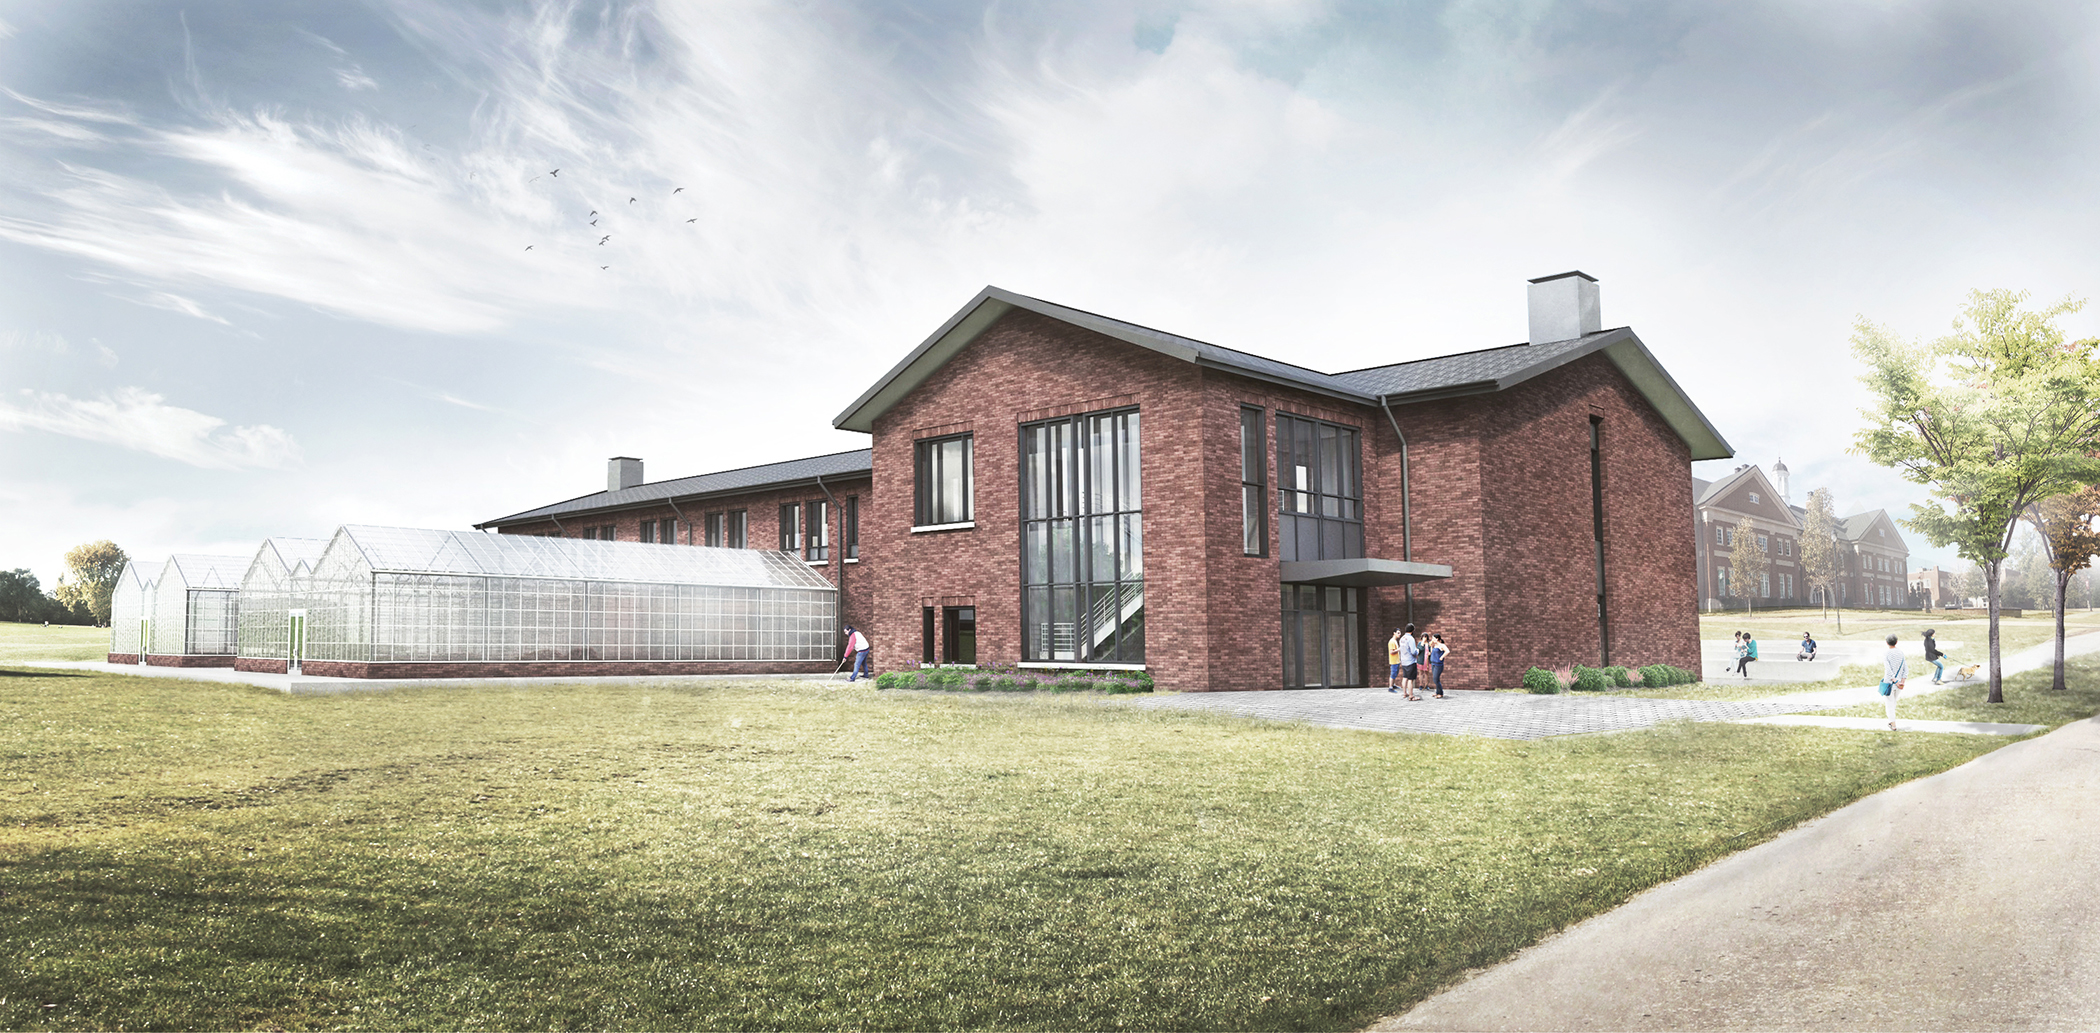 UGA's new turfgrass research facility in Griffin will include modern laboratories, offices, conference and classroom space, greenhouses and a headhouse complex — housing seven turfgrass scientists, their staff, post doctoral research associates, visiting scientists and graduate students.